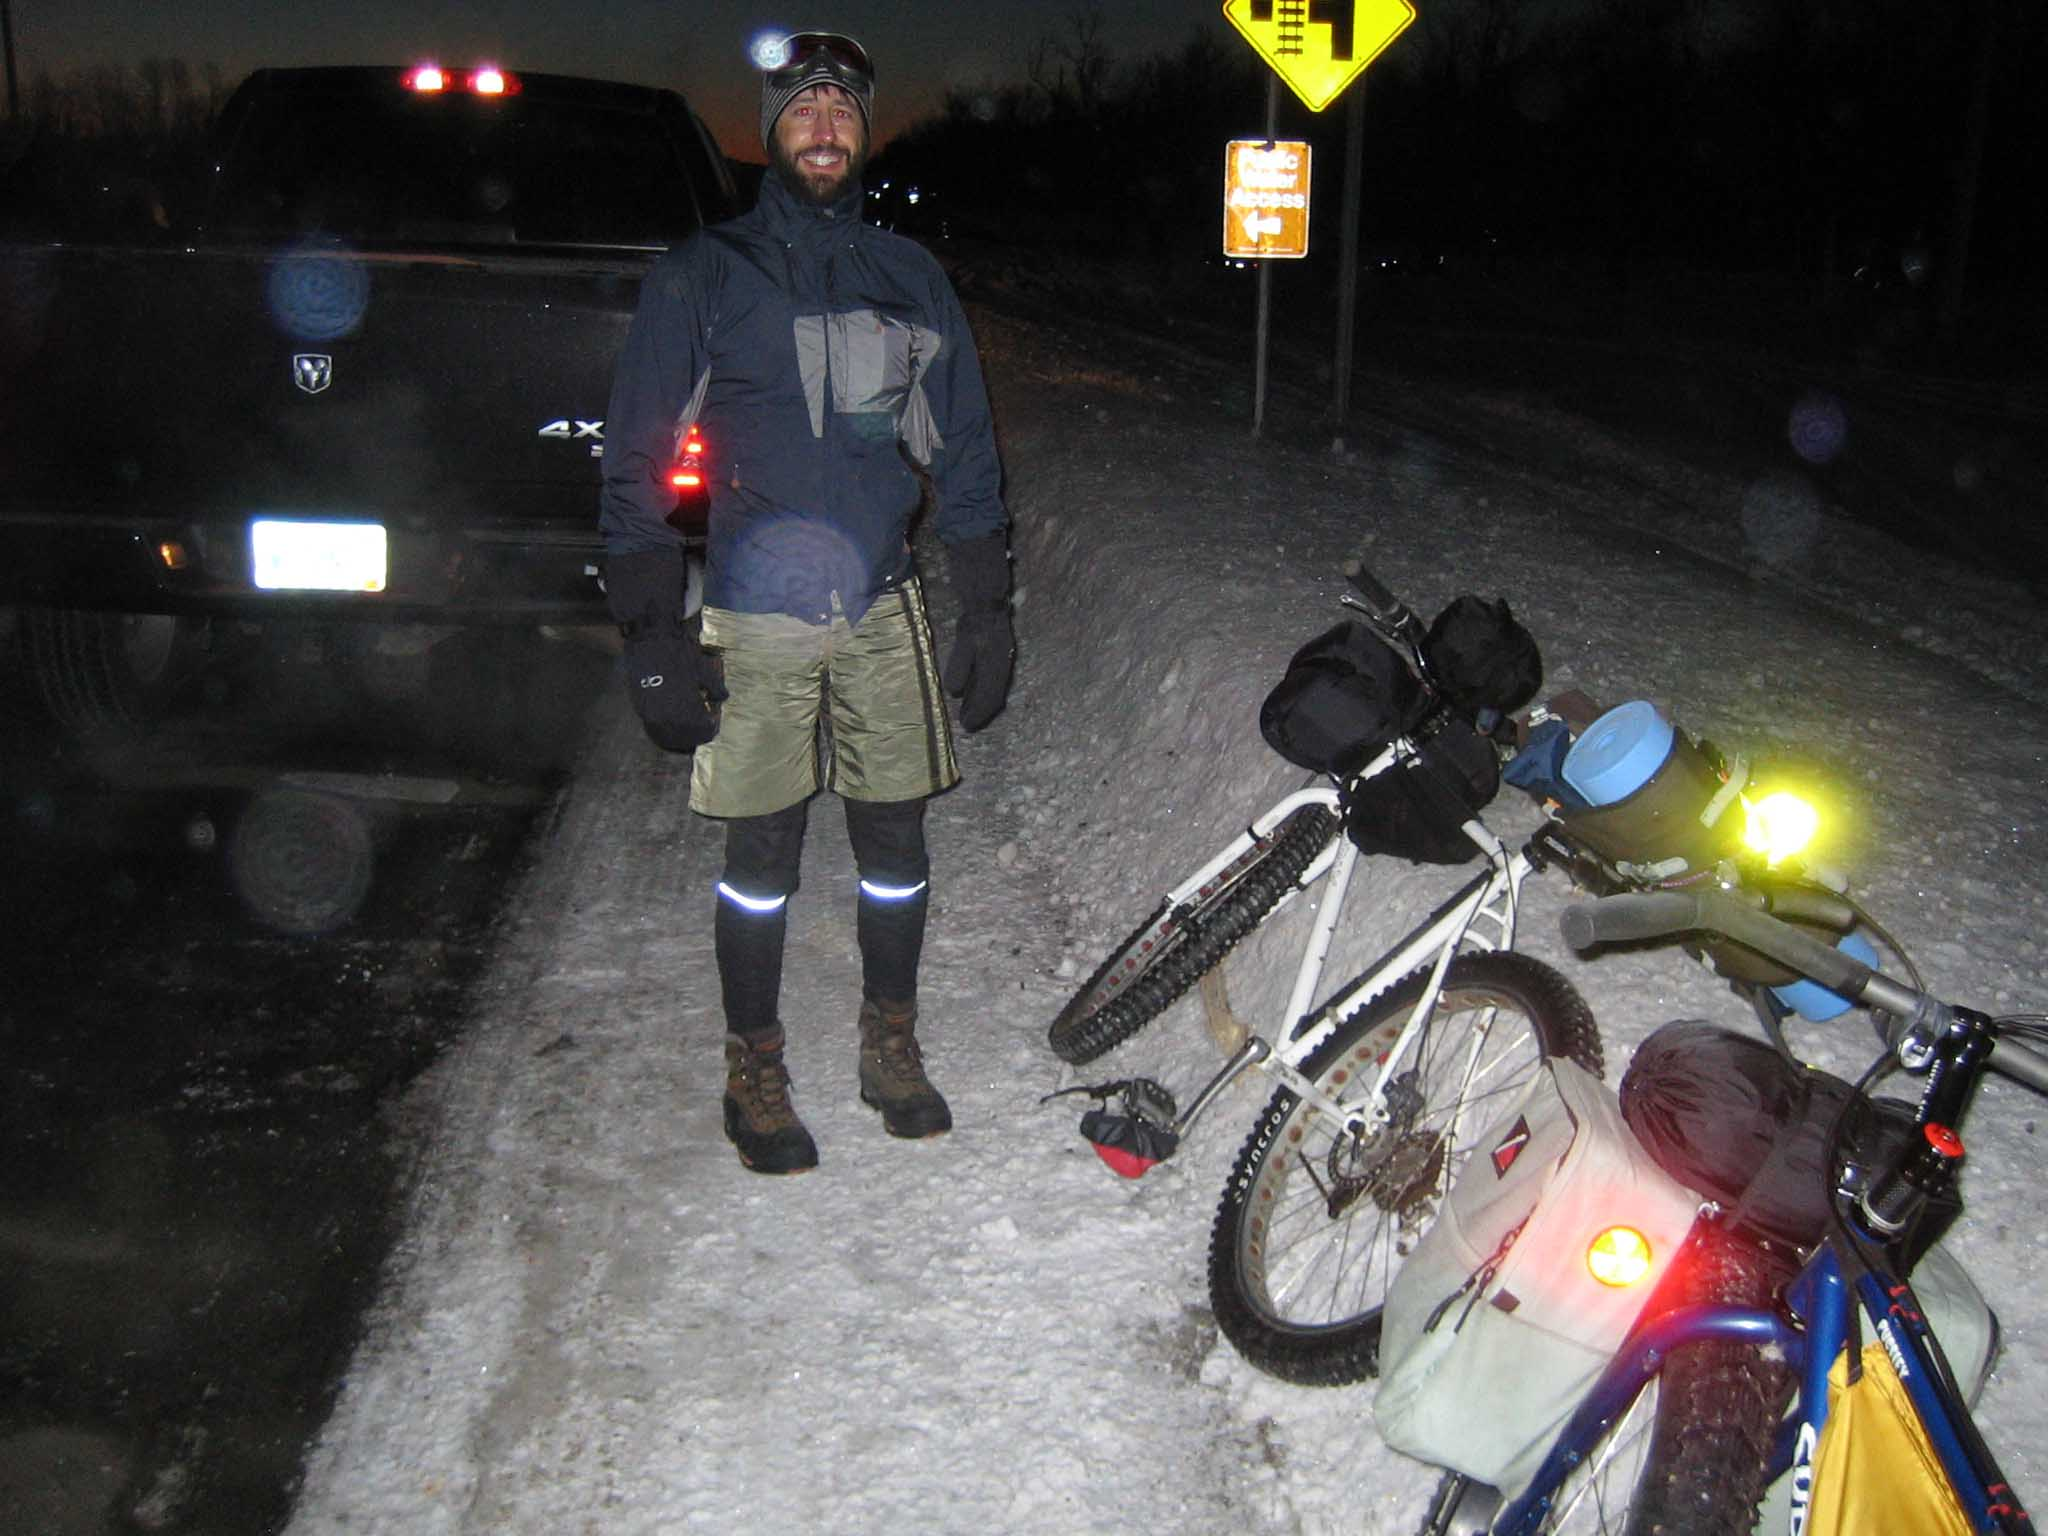 A smiling cyclist standing on a snowy roadside with 2 bikes laying down, at night